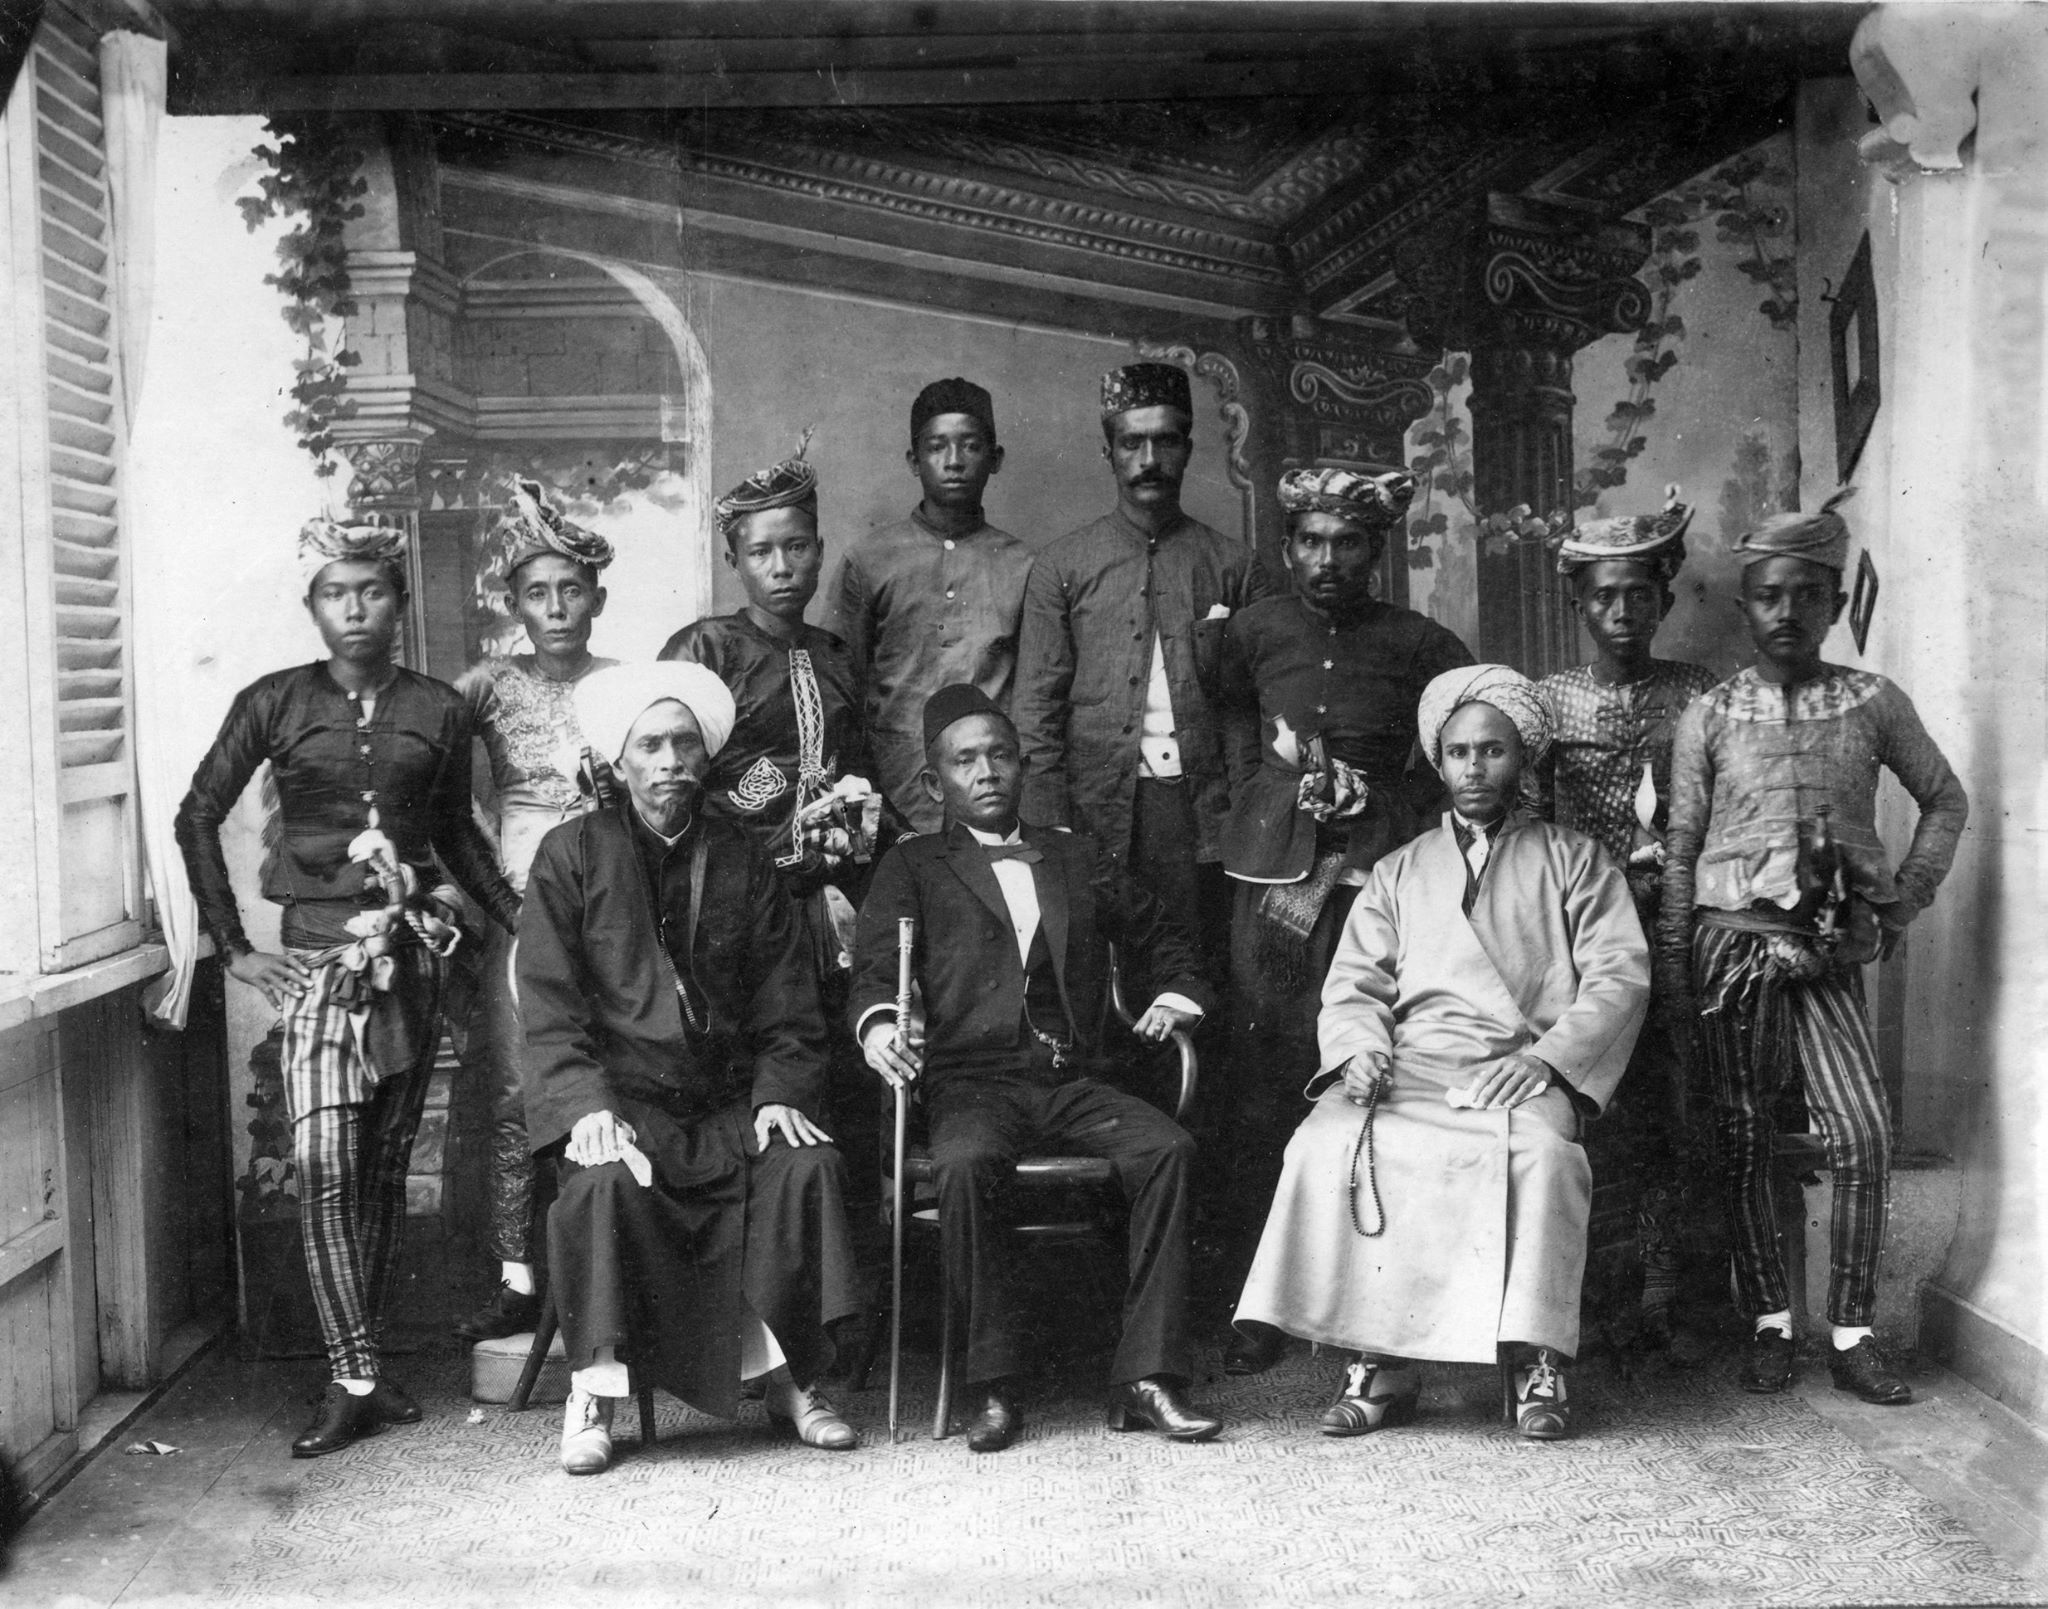 The Sultan of Sulu seated center with walking stick and fez. He is accompanied by high status moros and his religious advisor. Note that all the men are wearing shoes. This was a status symbol only the highest rank could enjoy. Most men and women in Jolo went barefoot.